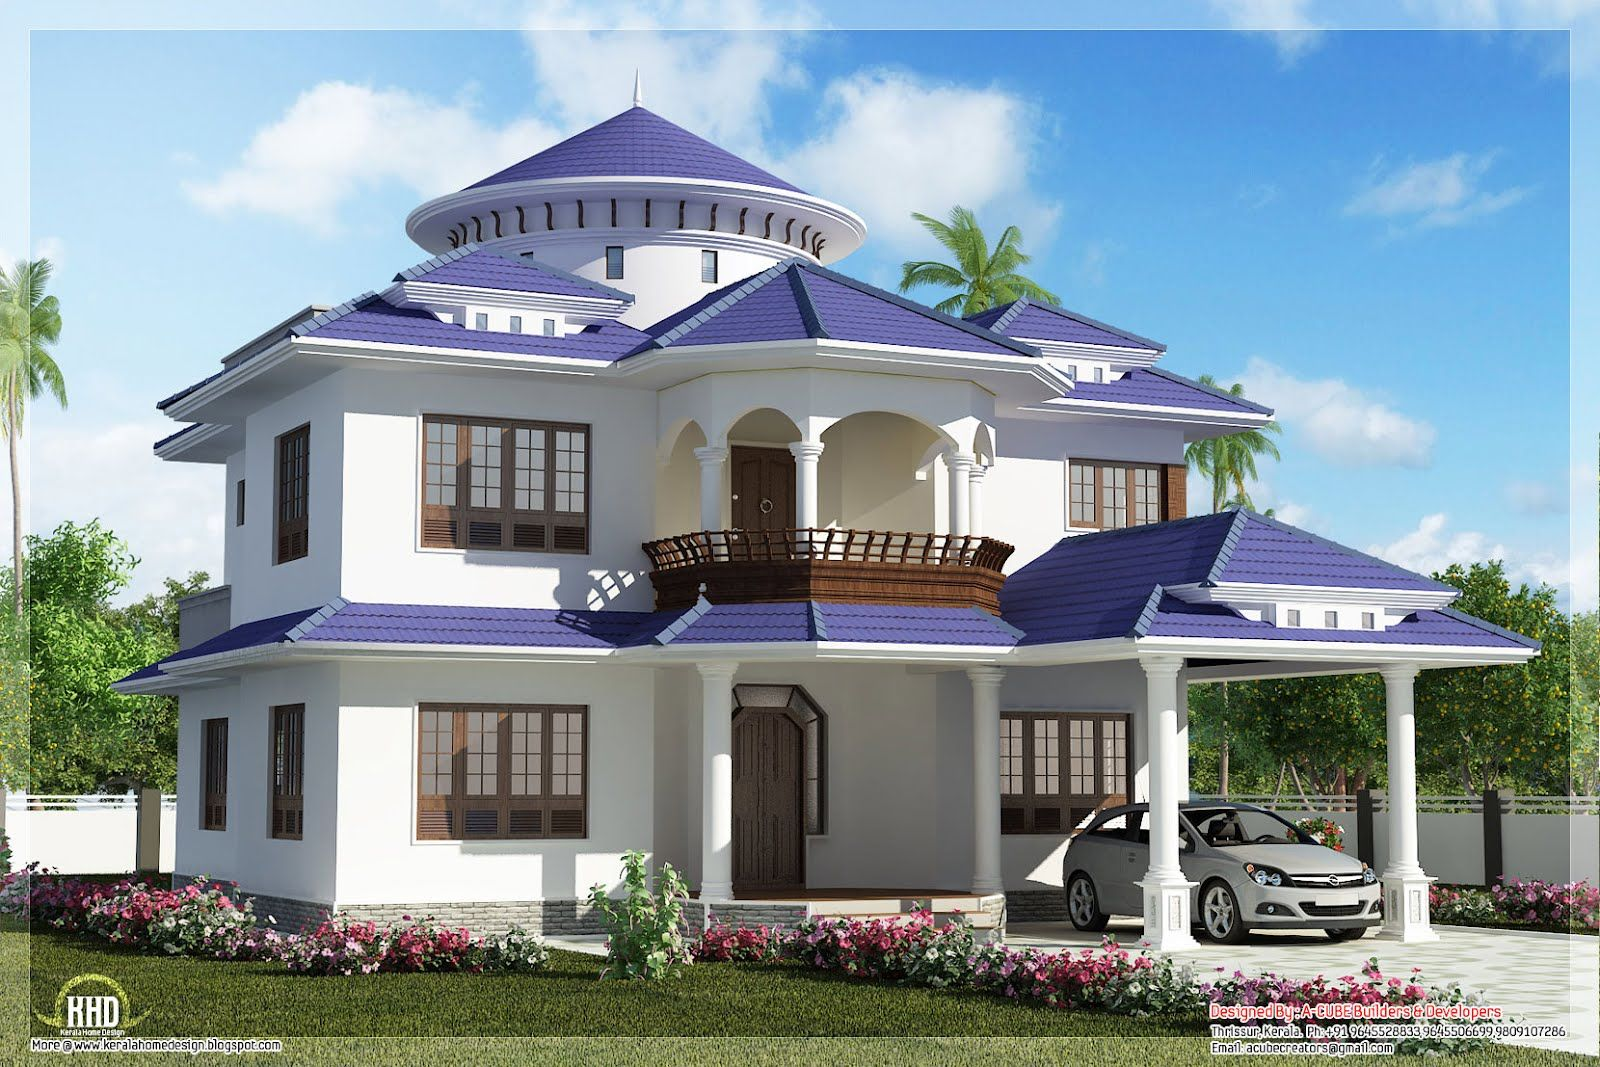 house design pictures - Home Design Photos